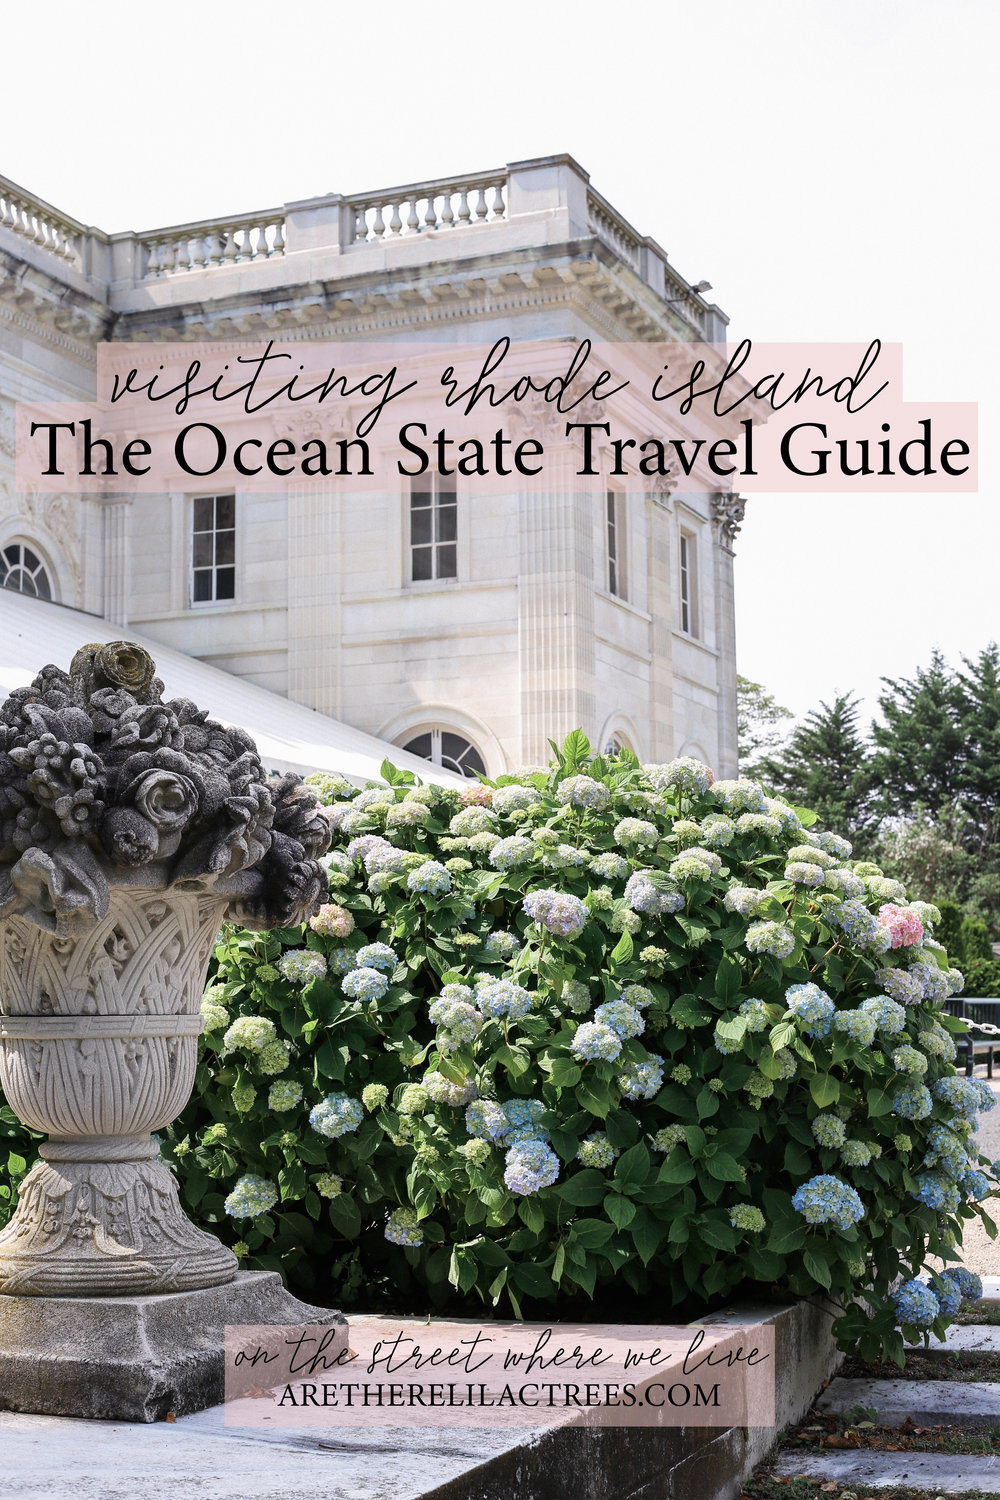 Visiting Rhode Island: The Ocean State Travel Guide | On the Street Where We Live (aretherelilactrees.com)